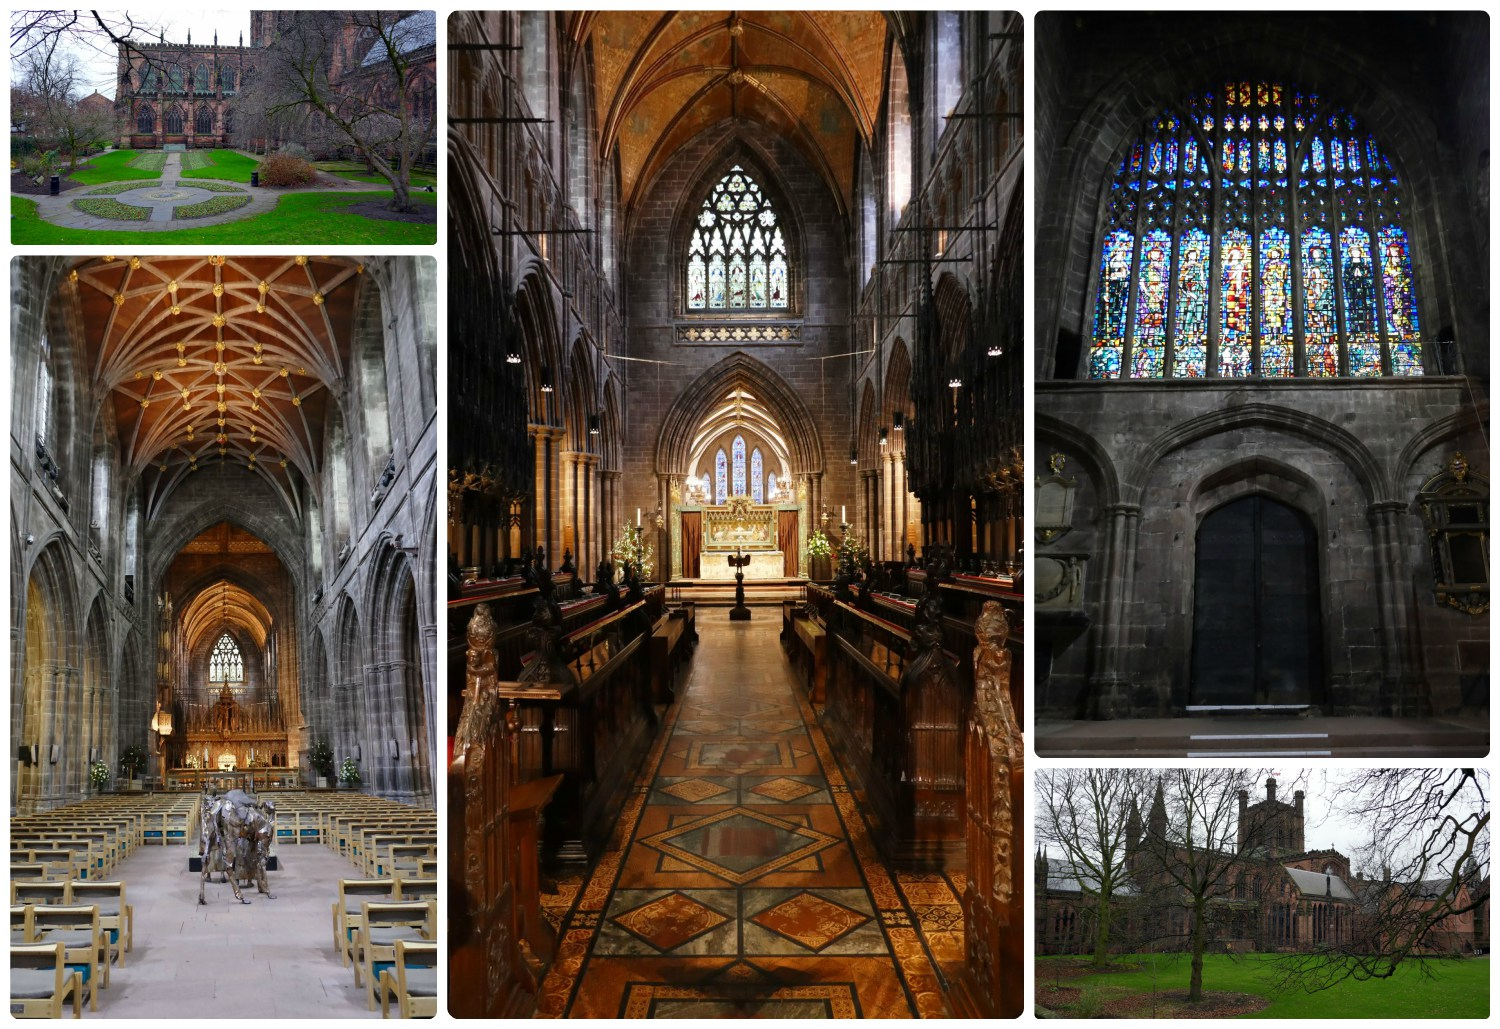 The Chester Cathedral in Chester, United Kingdom is very impressive!